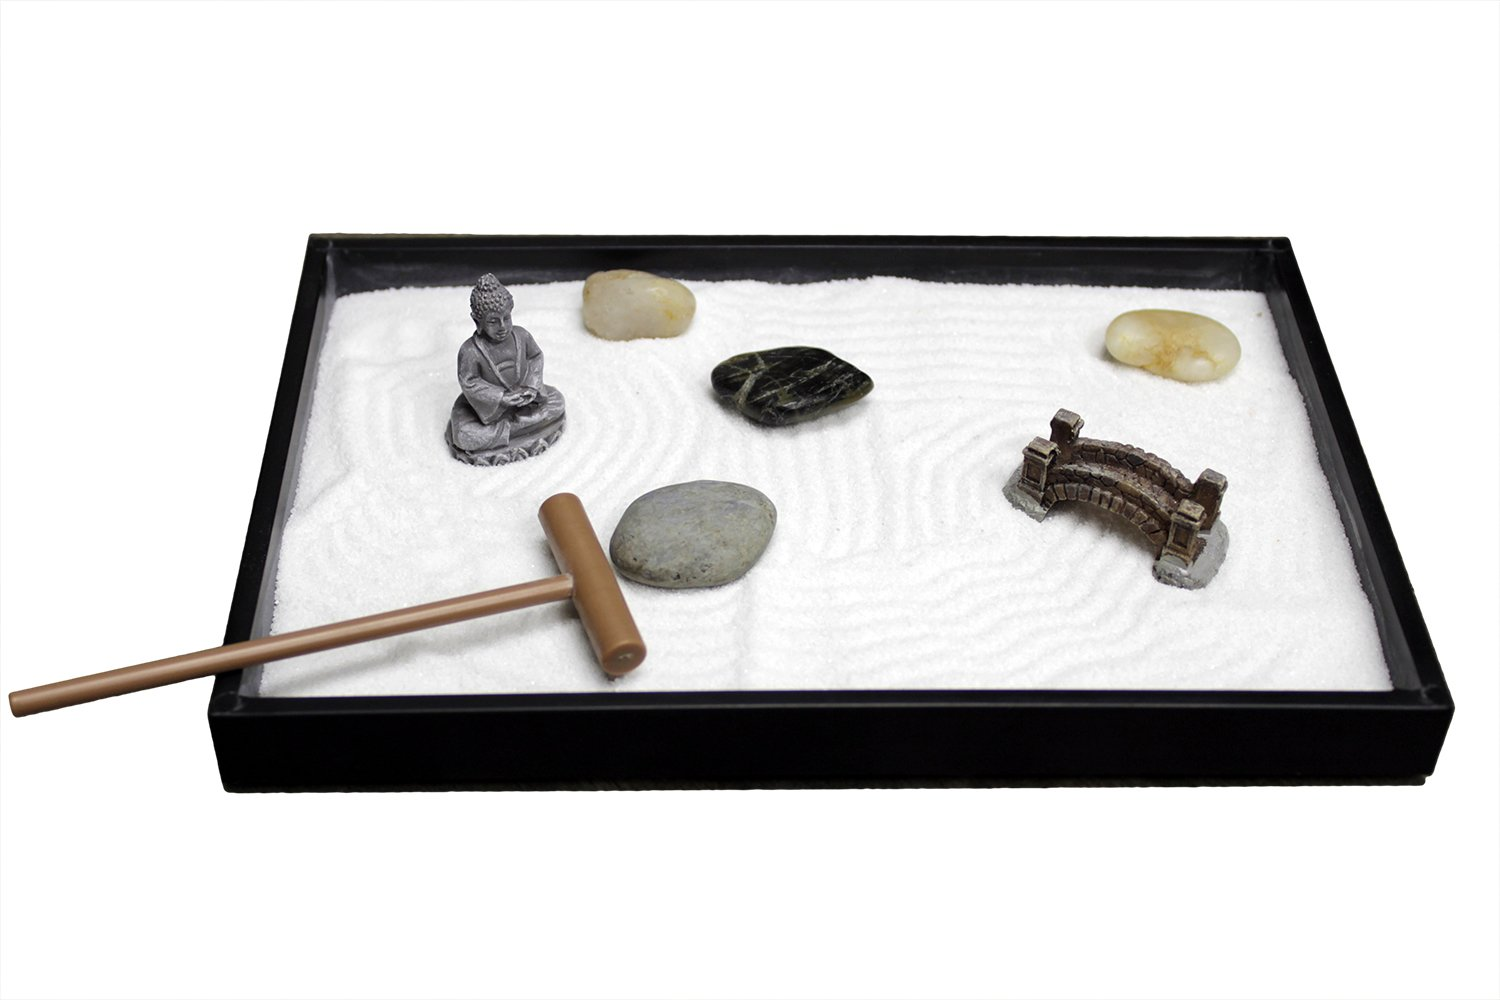 Natures Mark, Mini Meditation Zen Garden, 7 x 6 inches Hexagon with Succulent, Figures and Natural River Rocks (7L x 6W) Nature's Mark